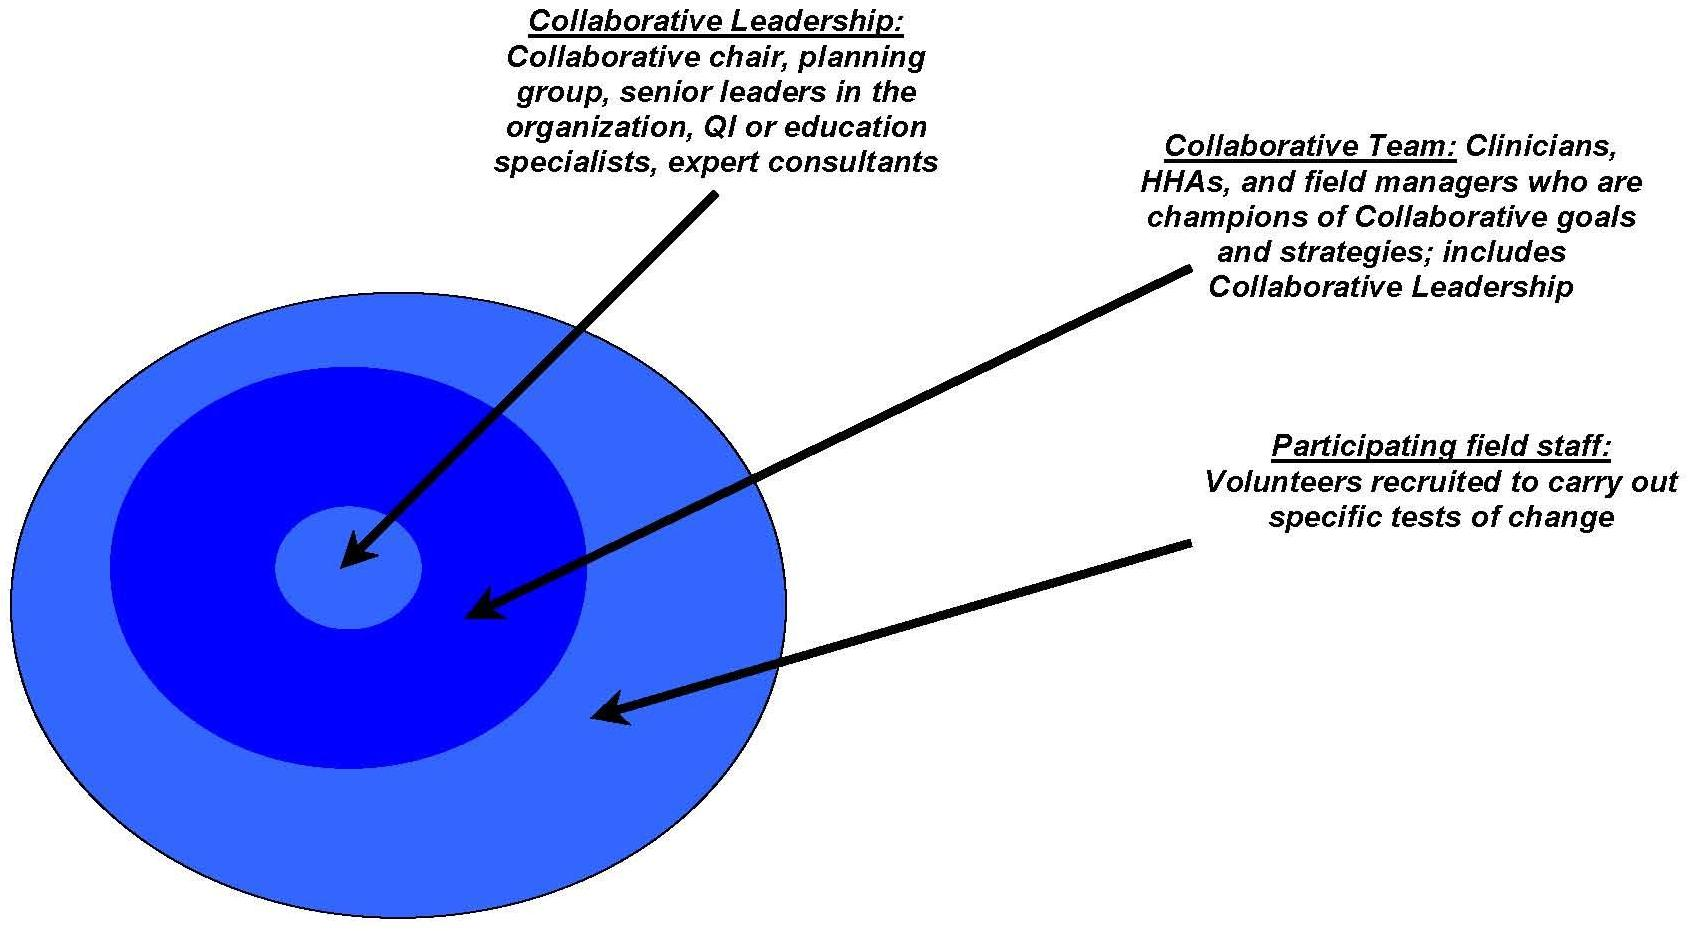 Circle Chart: INNER CIRCLE: Collaborative Leadership -- Collaborative chair, planning group, senior leaders in the organization, QI or education specialists, expert consultants. MIDDLE CIRCLE: Collaborative Team -- Clinicians, HHAs, and field managers who